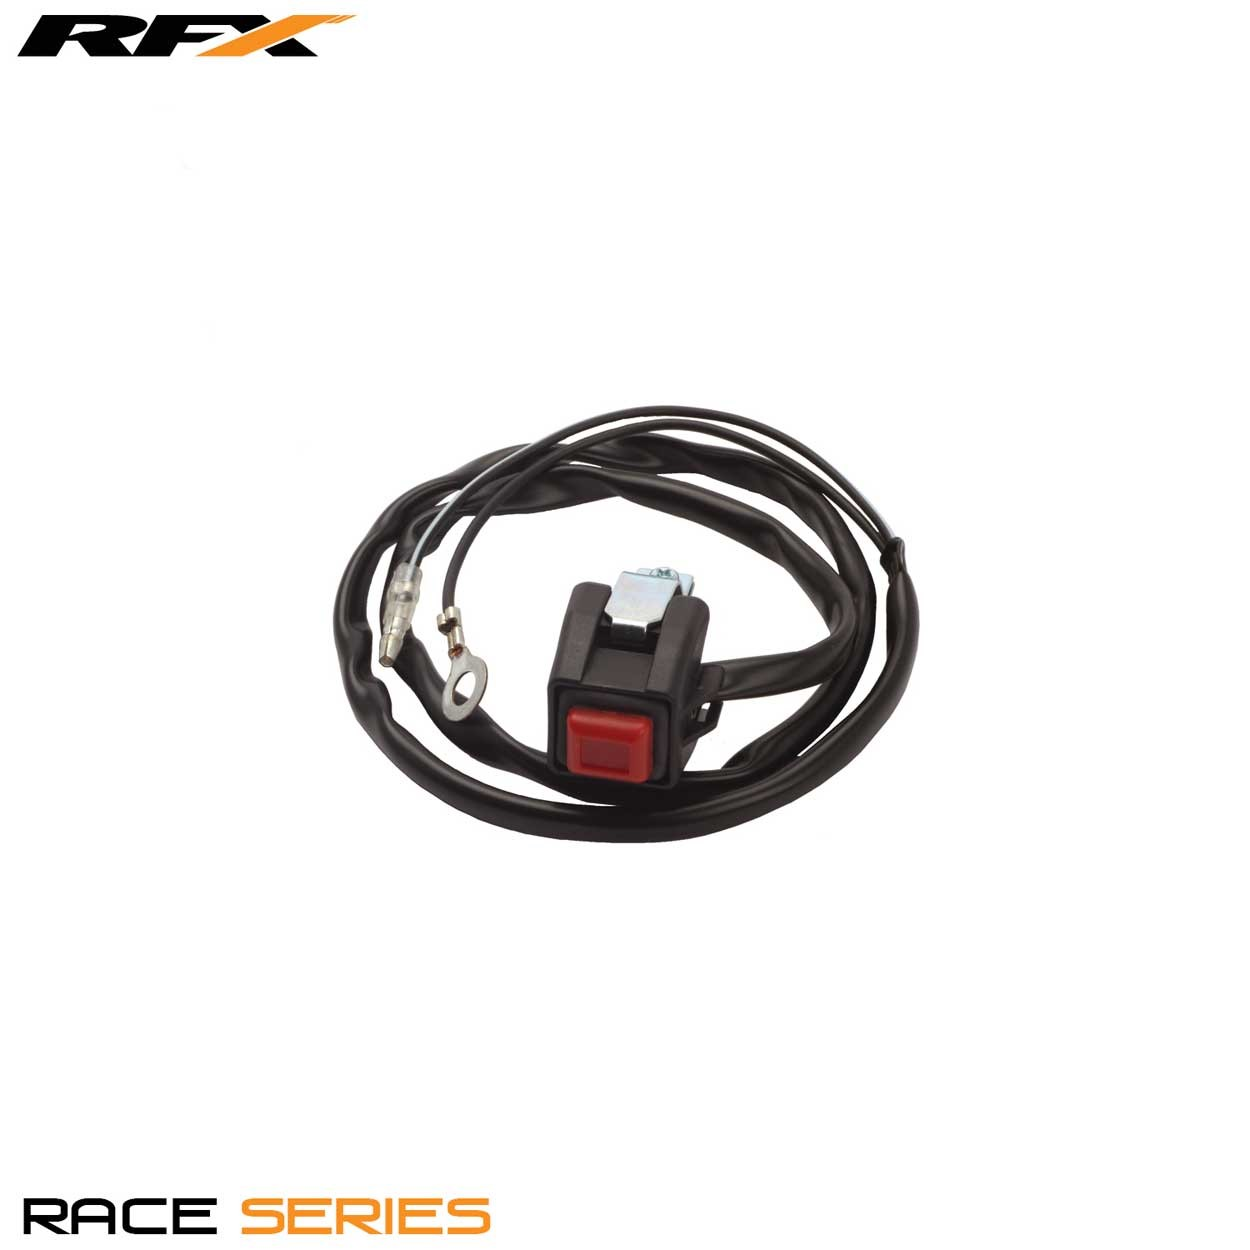 Rm 80 Kill Switch Wiring Wire Center Car Diagram Rfx Race Button Oem Replica Suzuki Rm80 85 89 14 Rm125 250 Rh Saddmx Com Boat